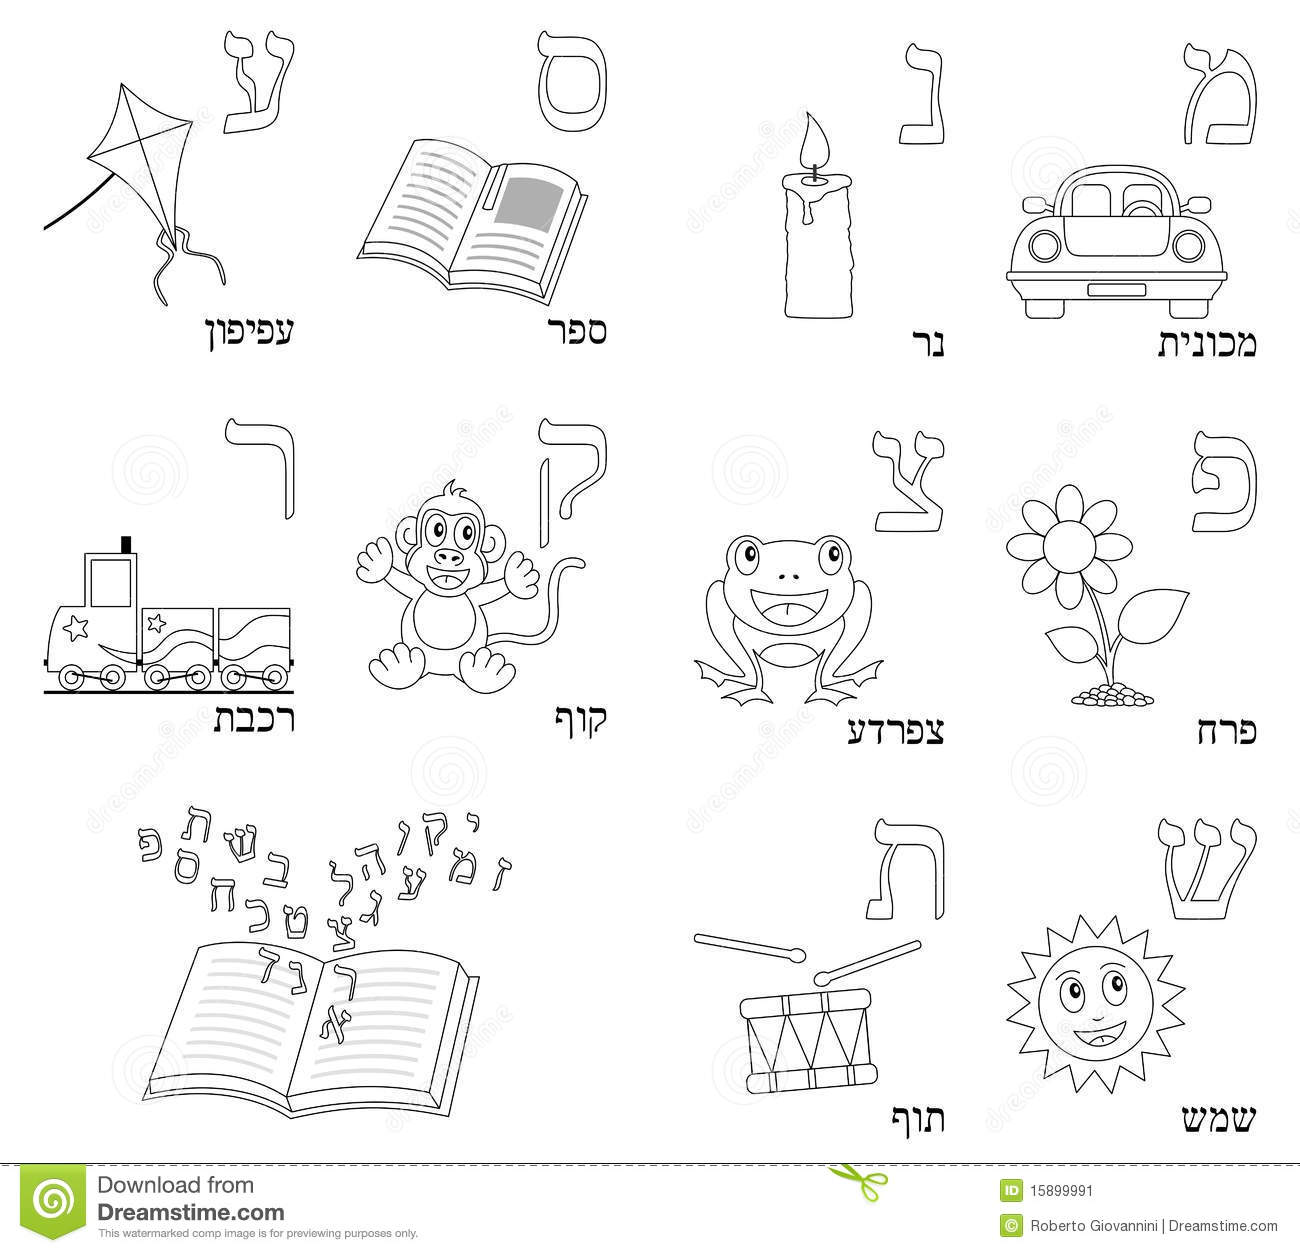 Coloring Pages Hebrew Alphabet : Coloring hebrew alphabet stock vector illustration